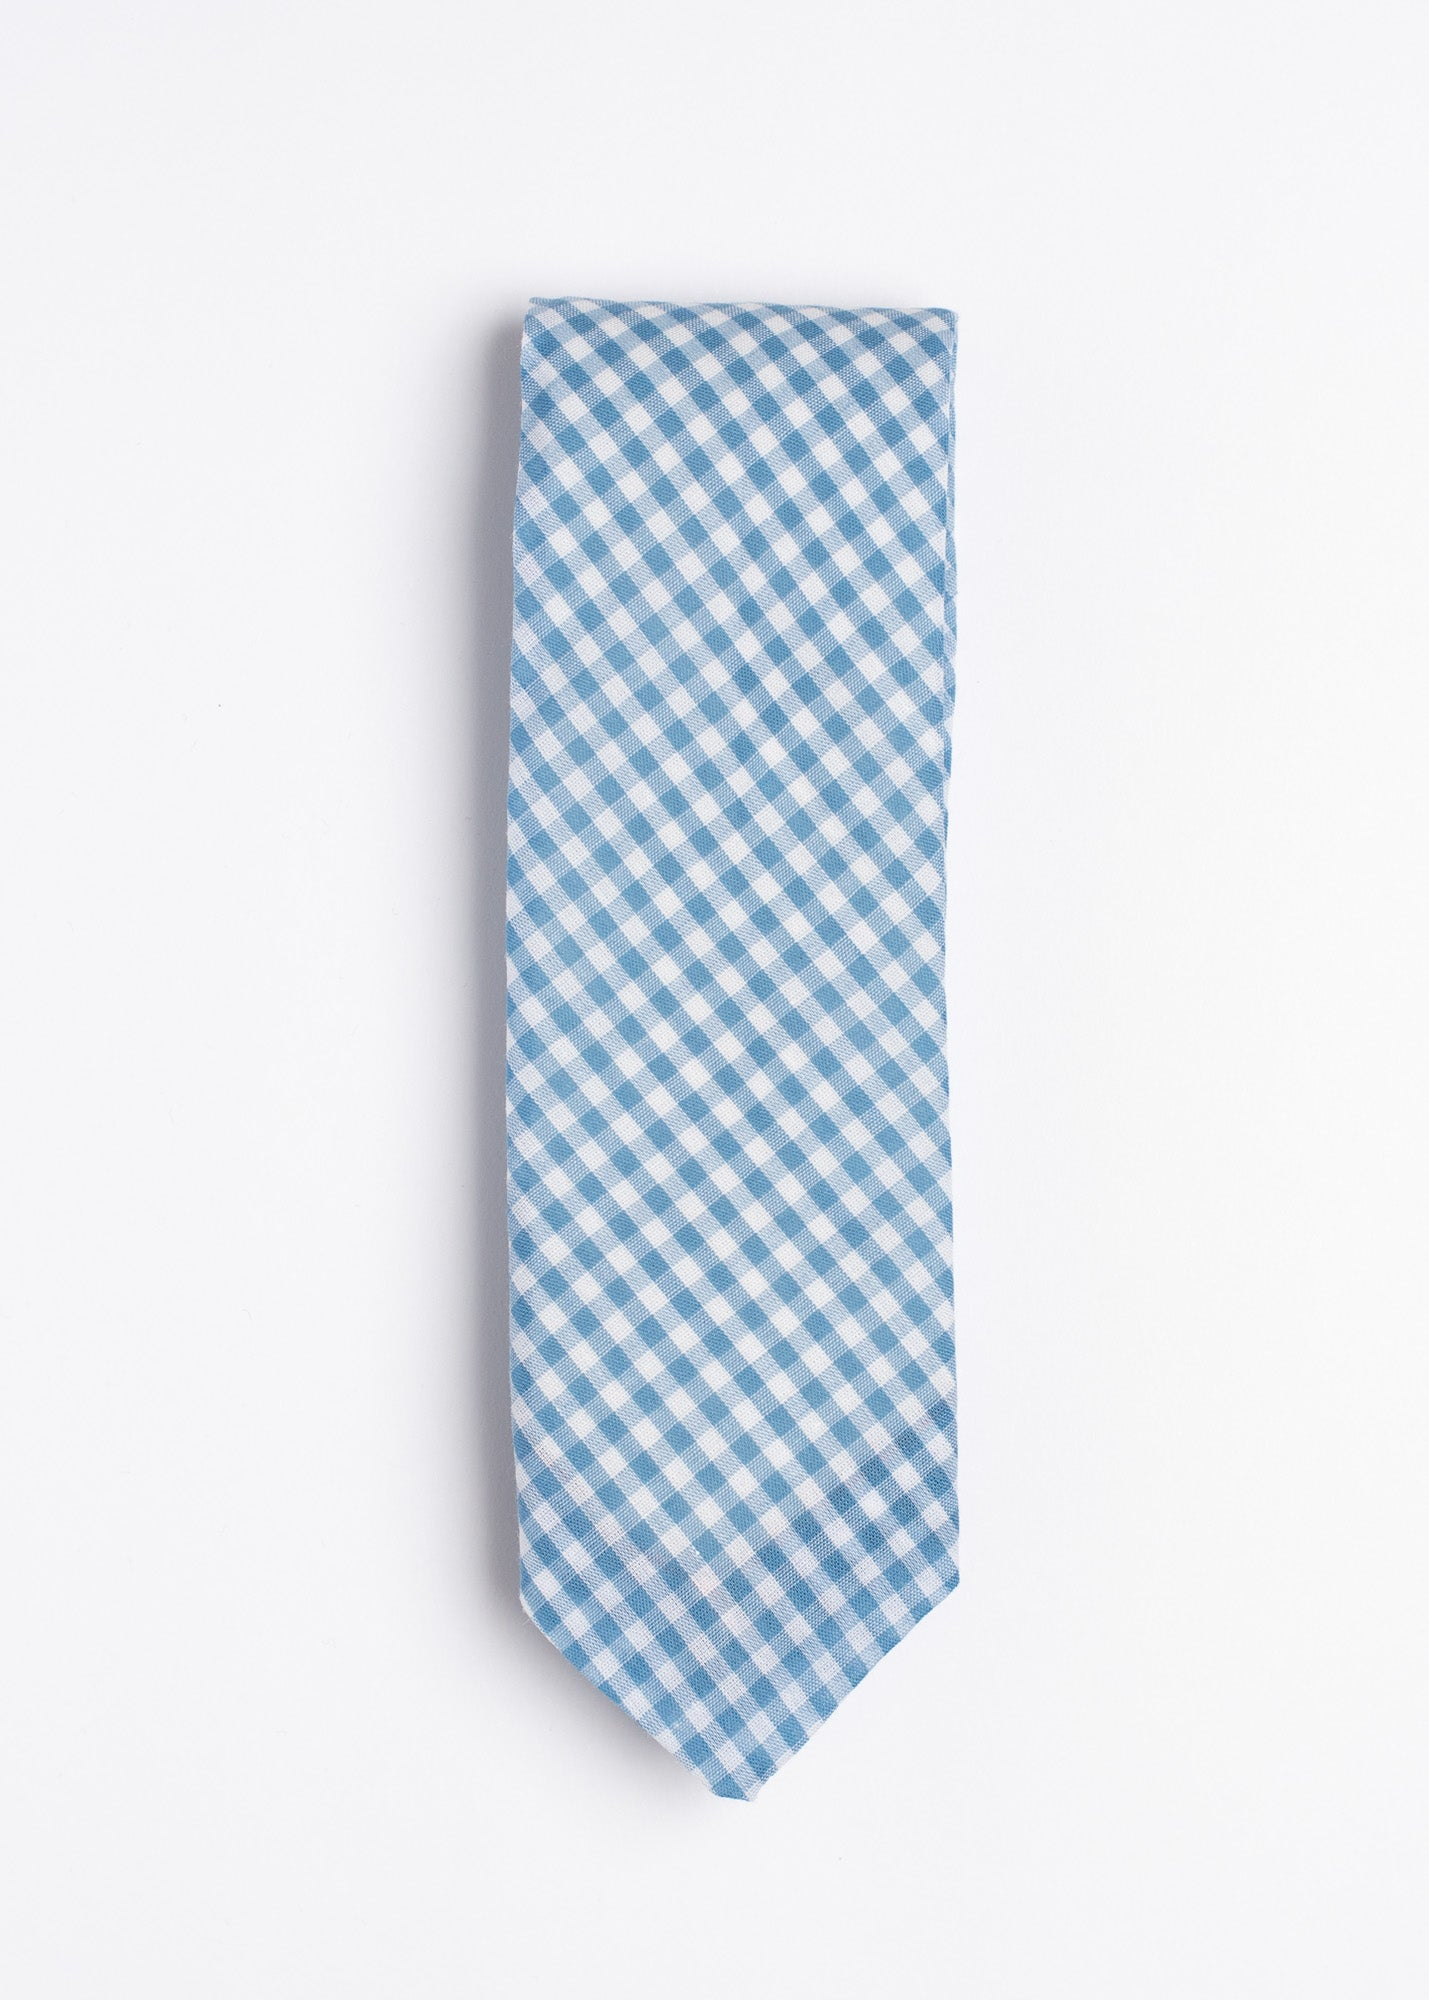 Blue and white gingham tie - Oxford Square